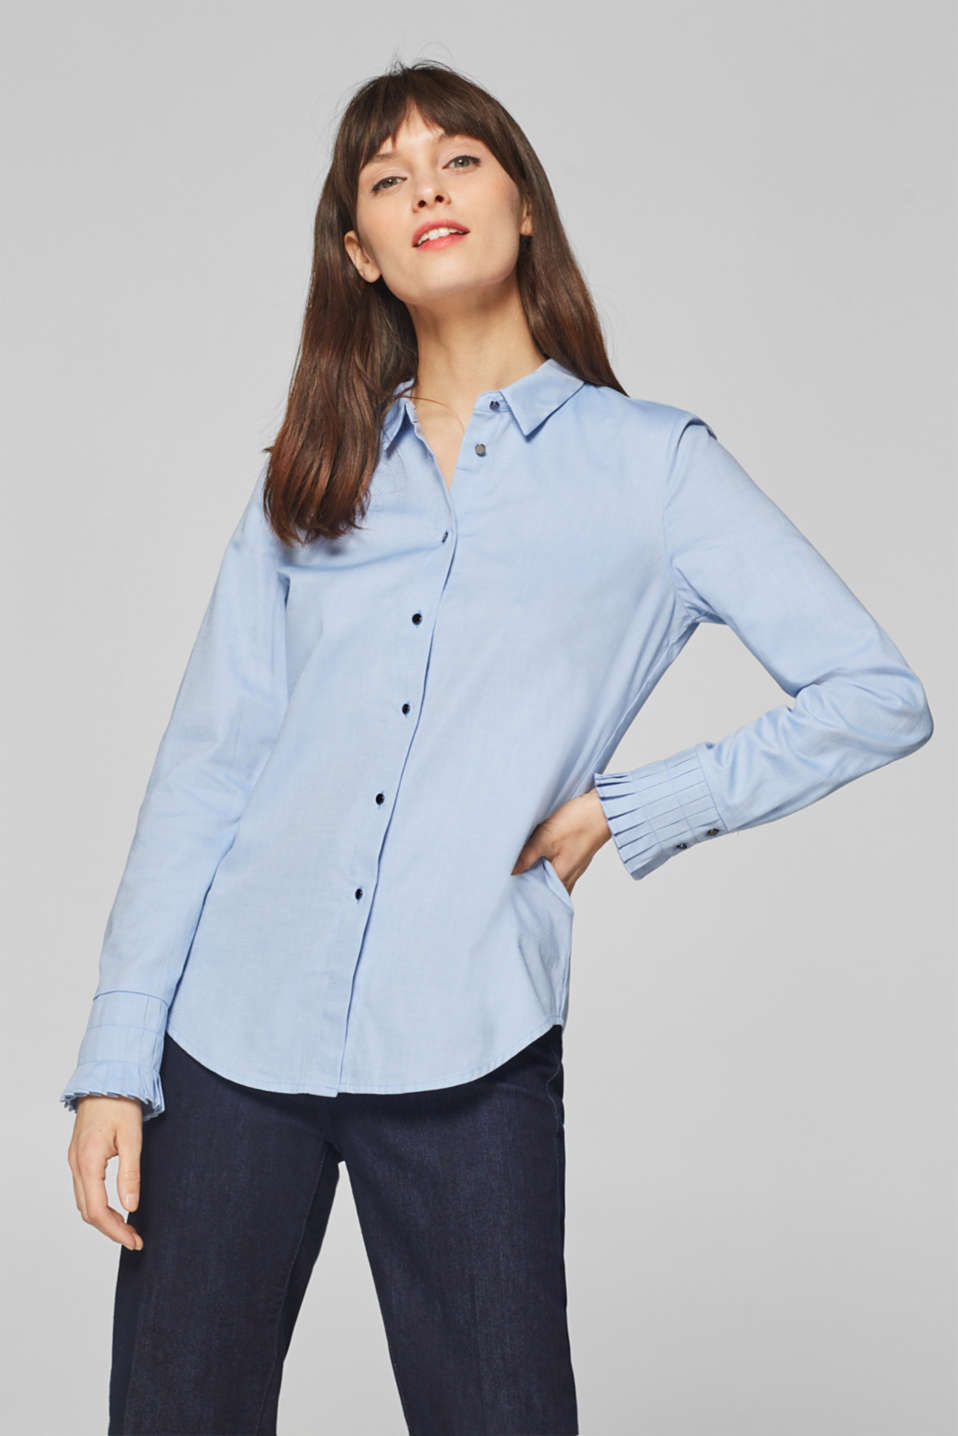 Esprit - Blouse with pleated cuffs, 100% cotton